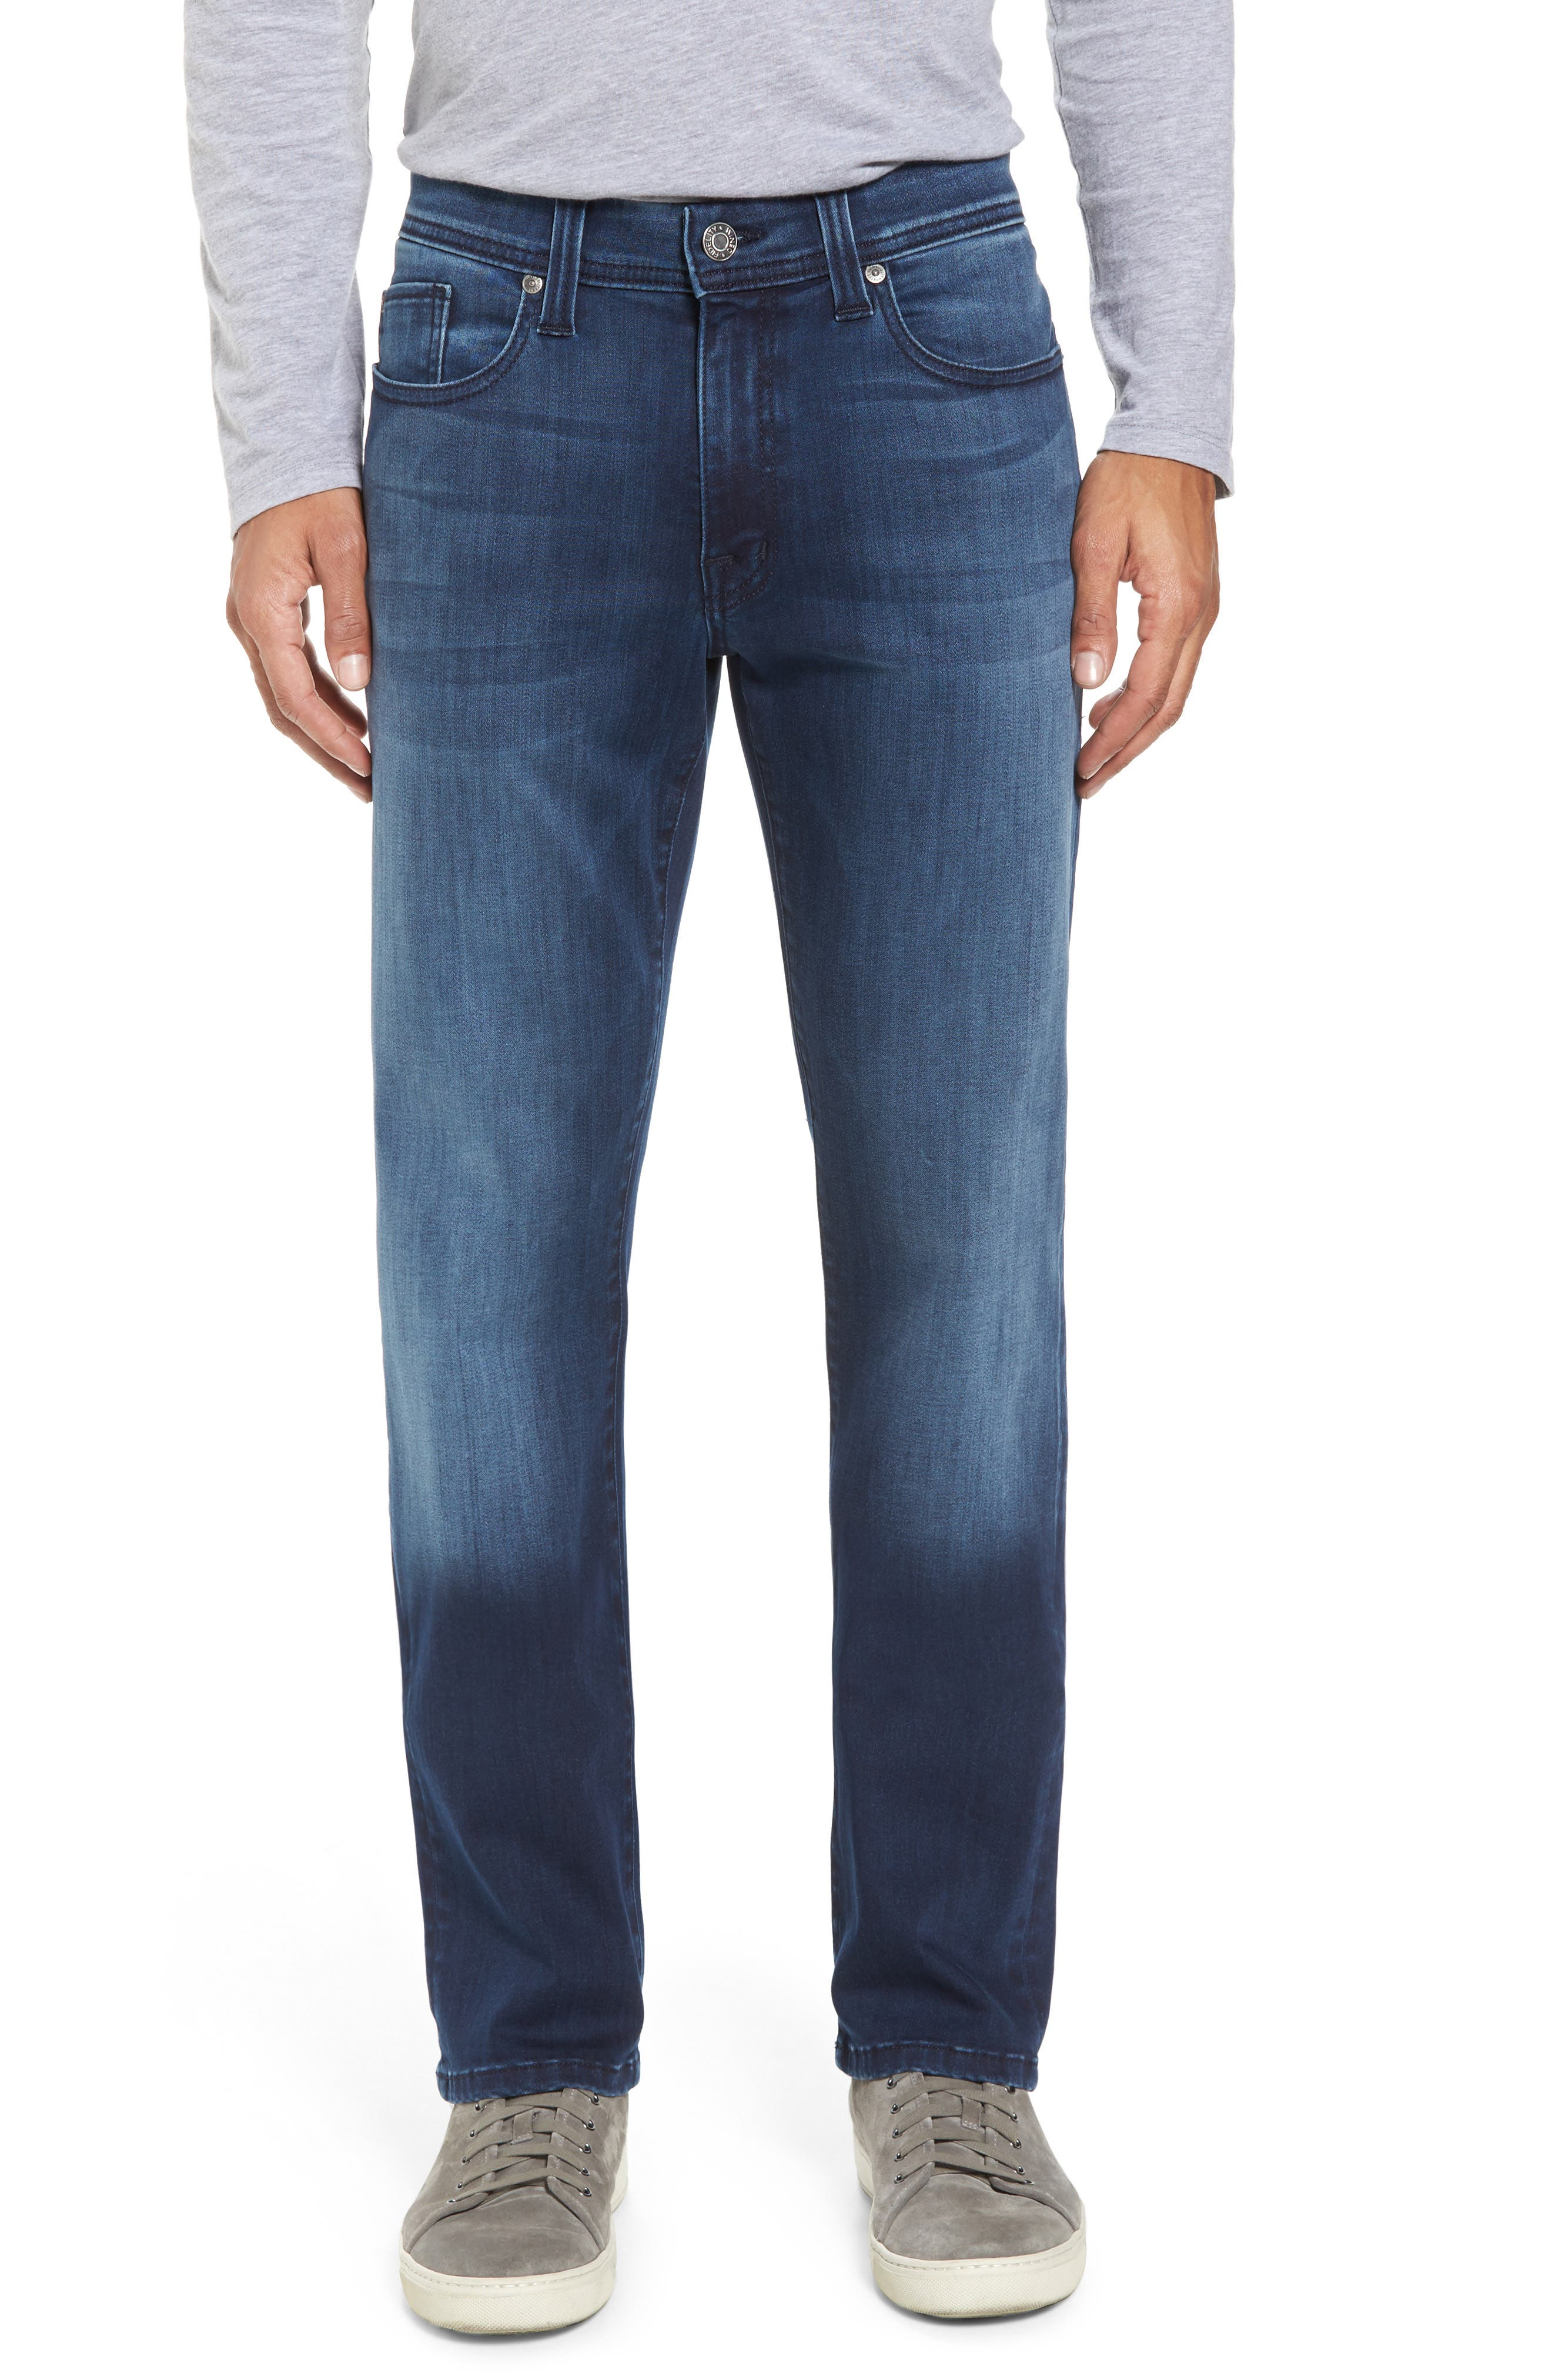 Jimmy Slim Straight Leg Jeans,                             Main thumbnail 1, color,                             400